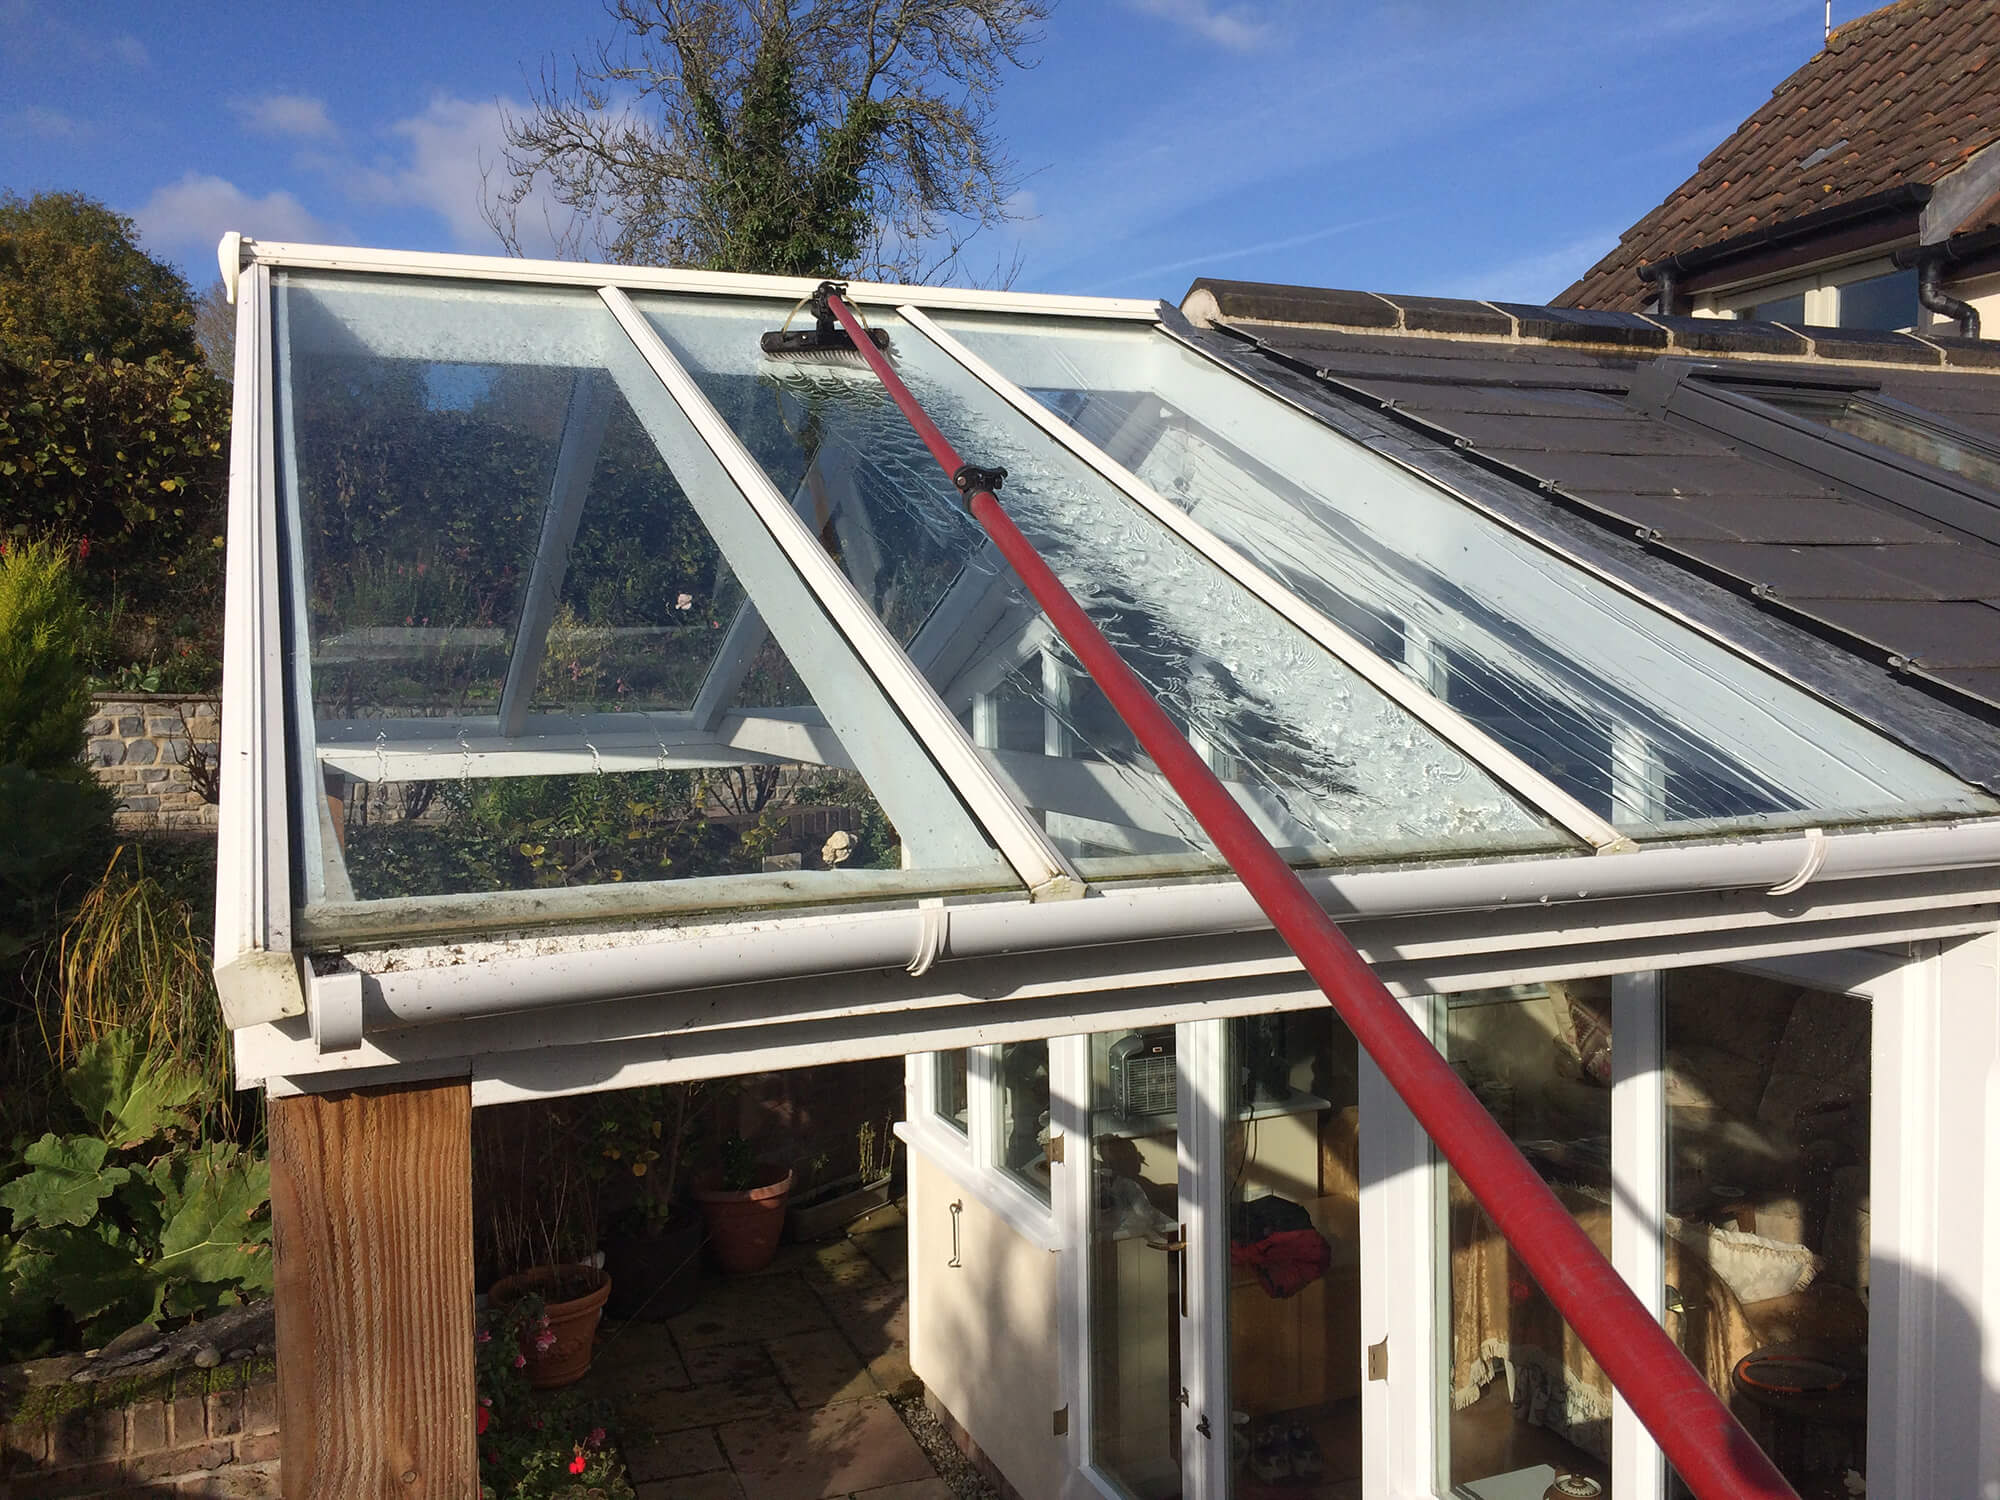 Cleaning a conservatory roof with a reach and wash system